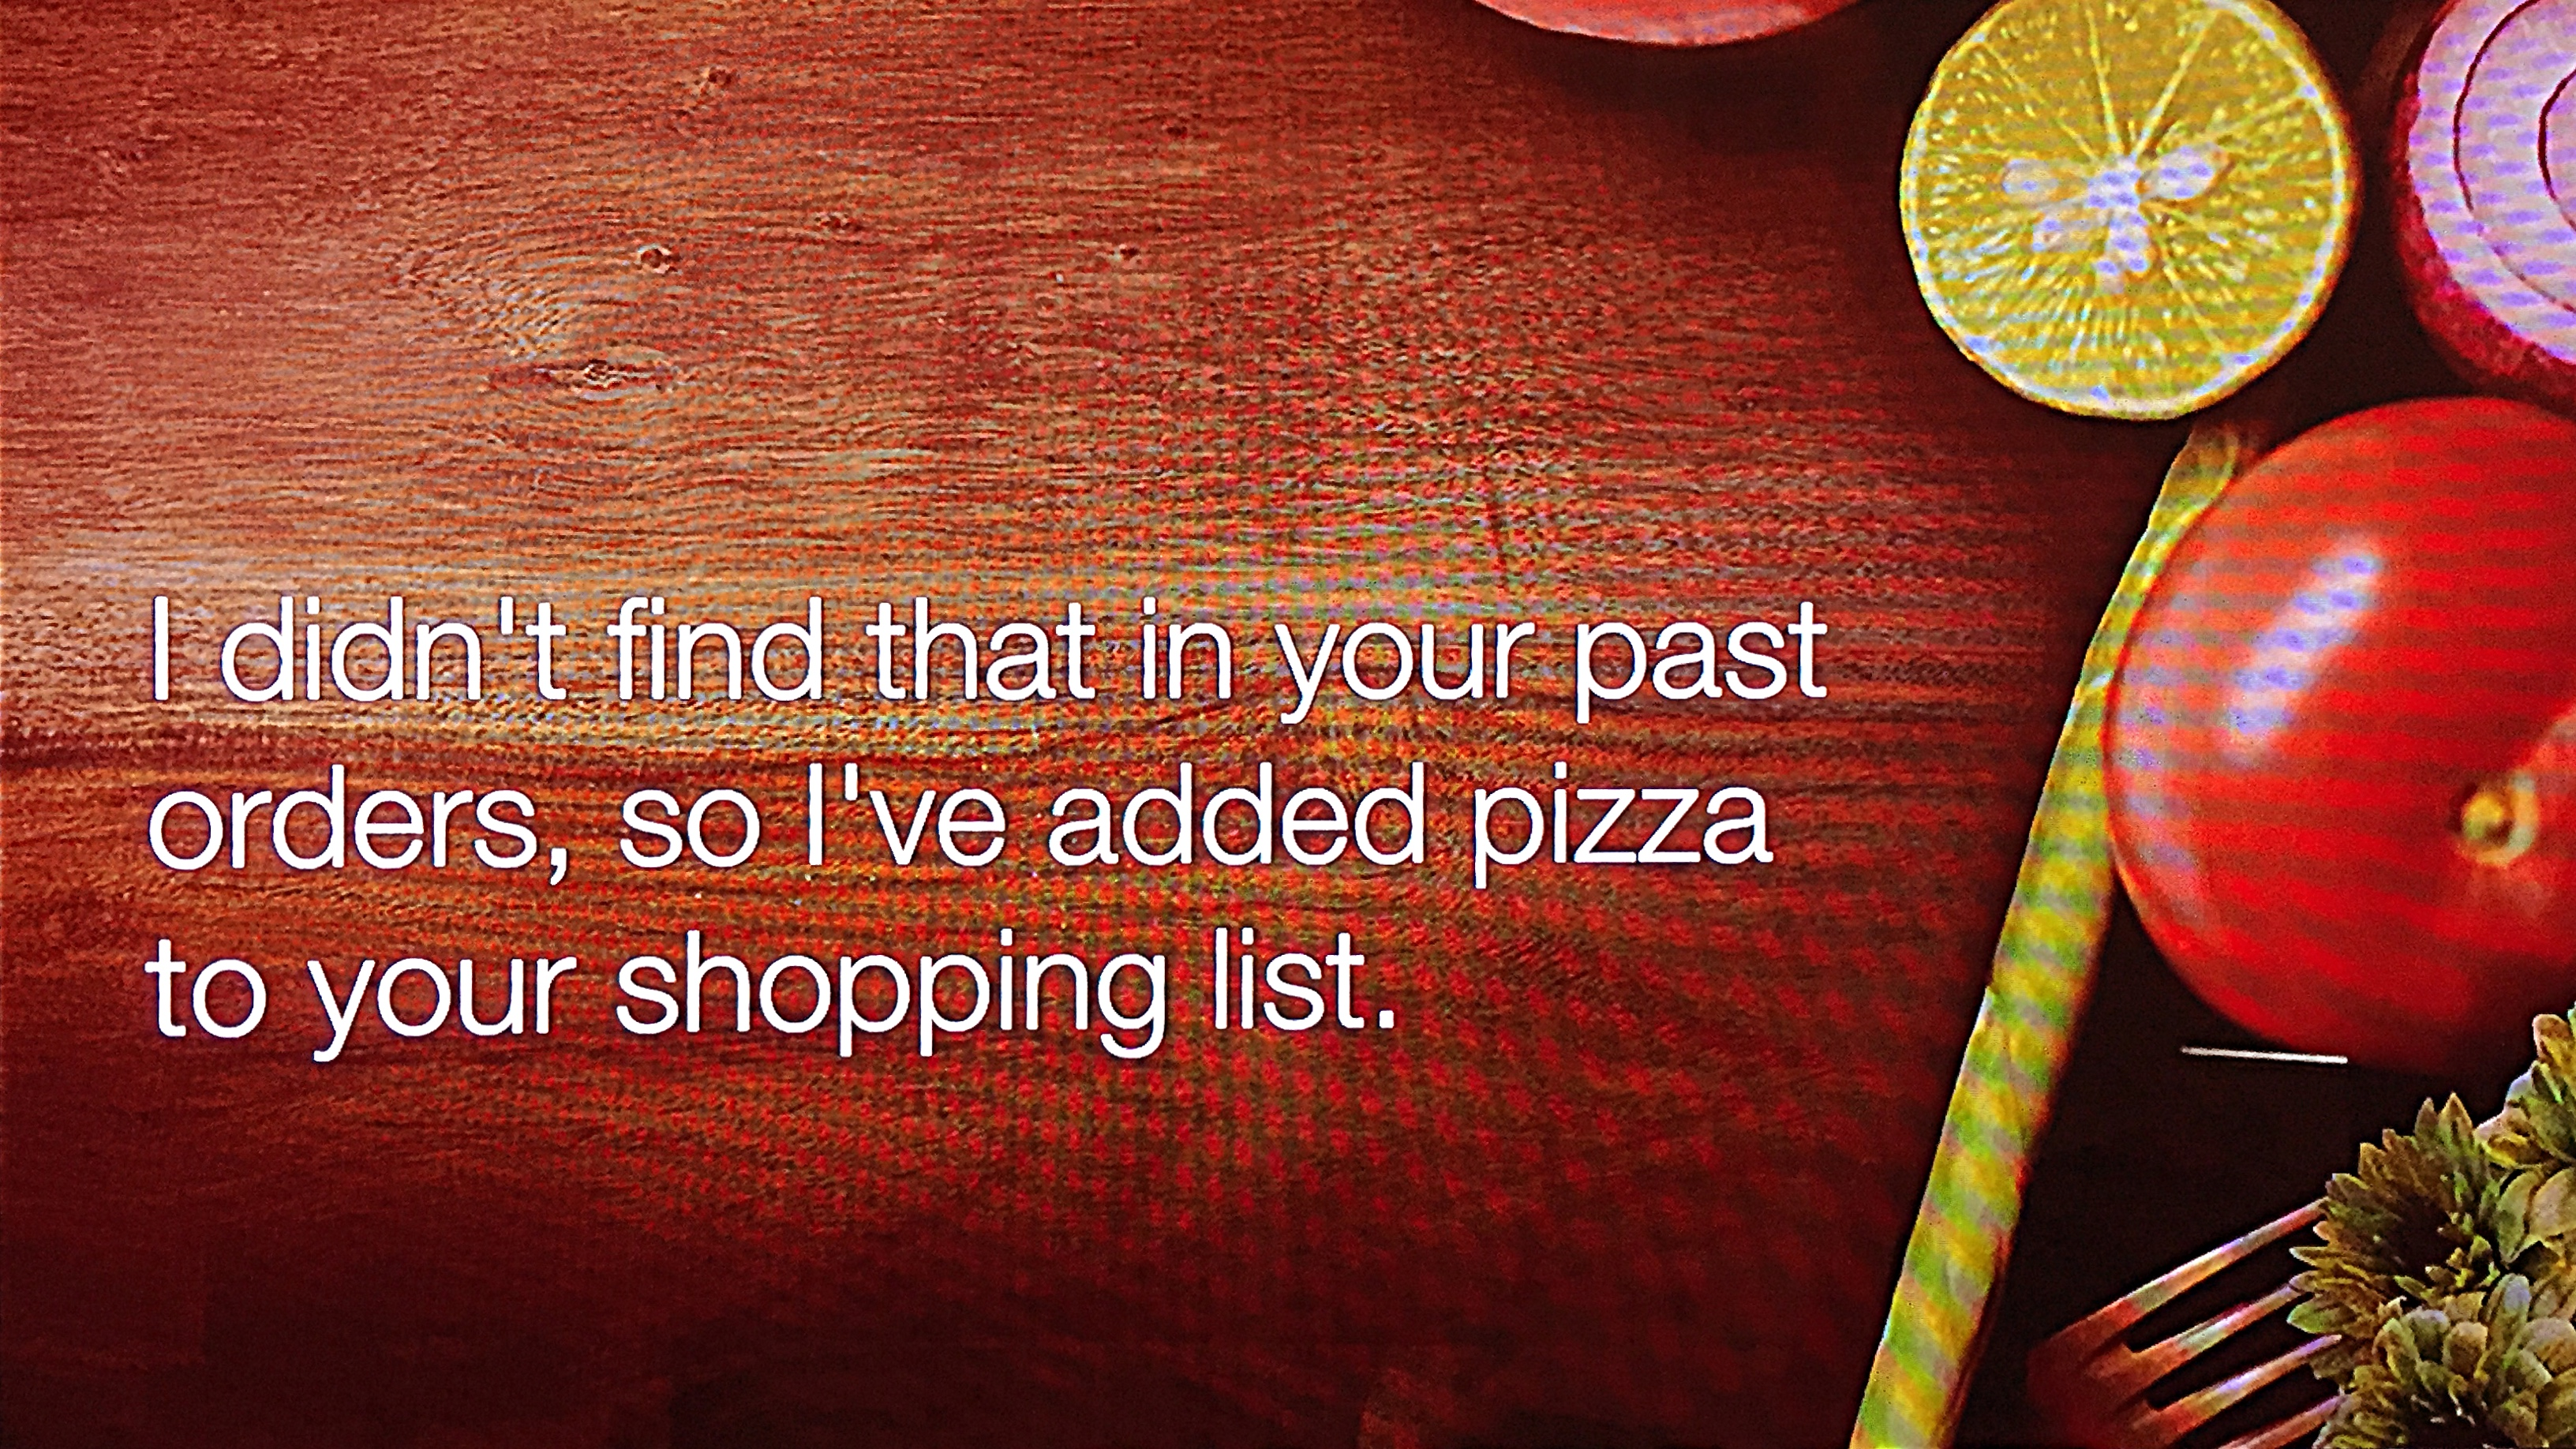 Alexa added pizza to my shopping list.